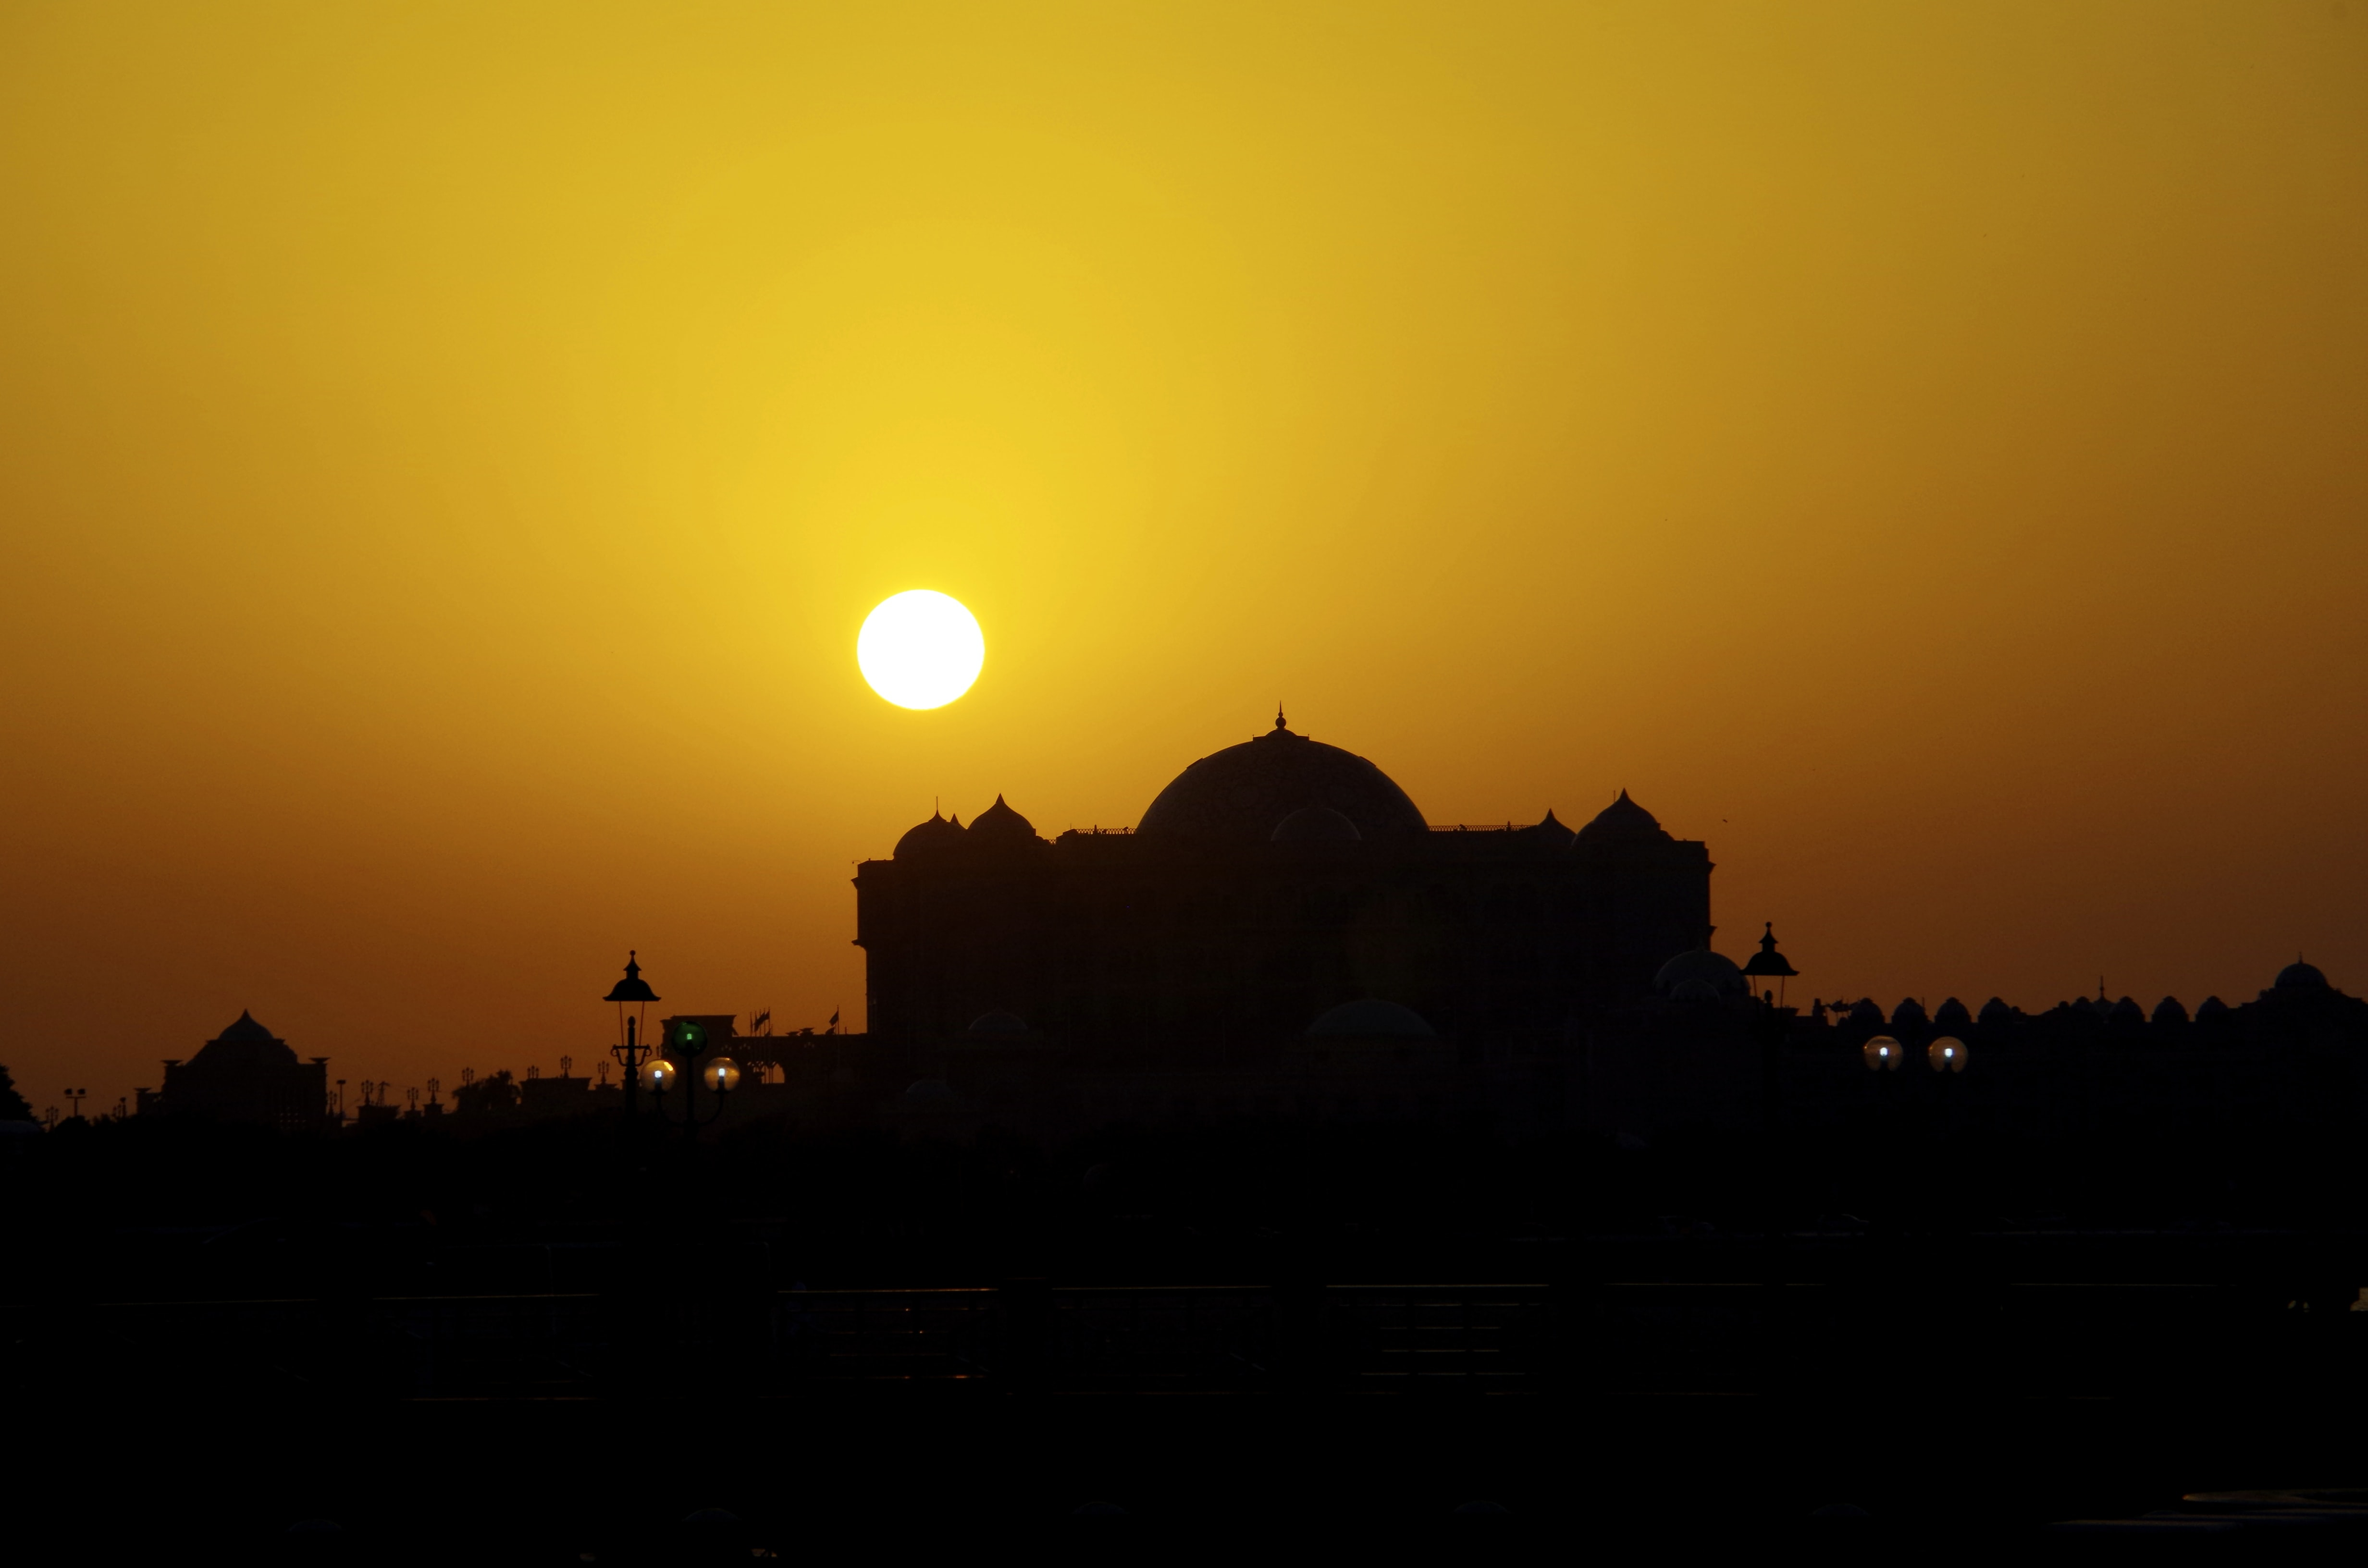 Silhouette of a mask at orange sunset in Abu Dhabi